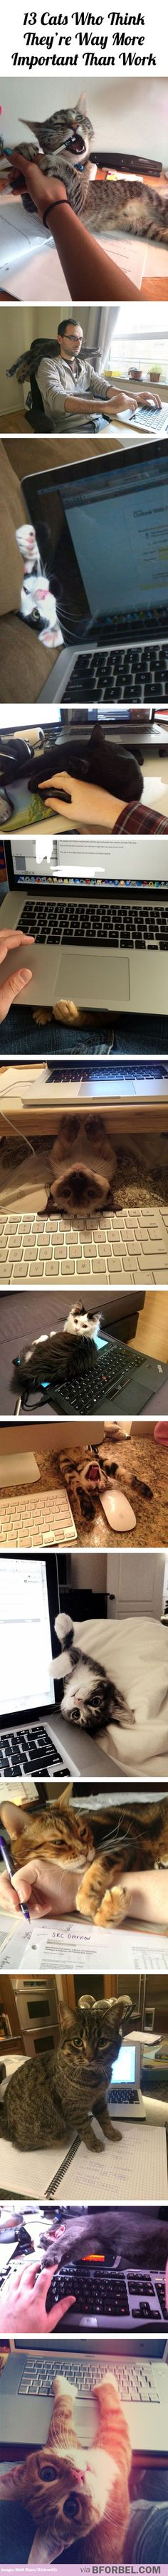 13 cats who think they're way more important than work